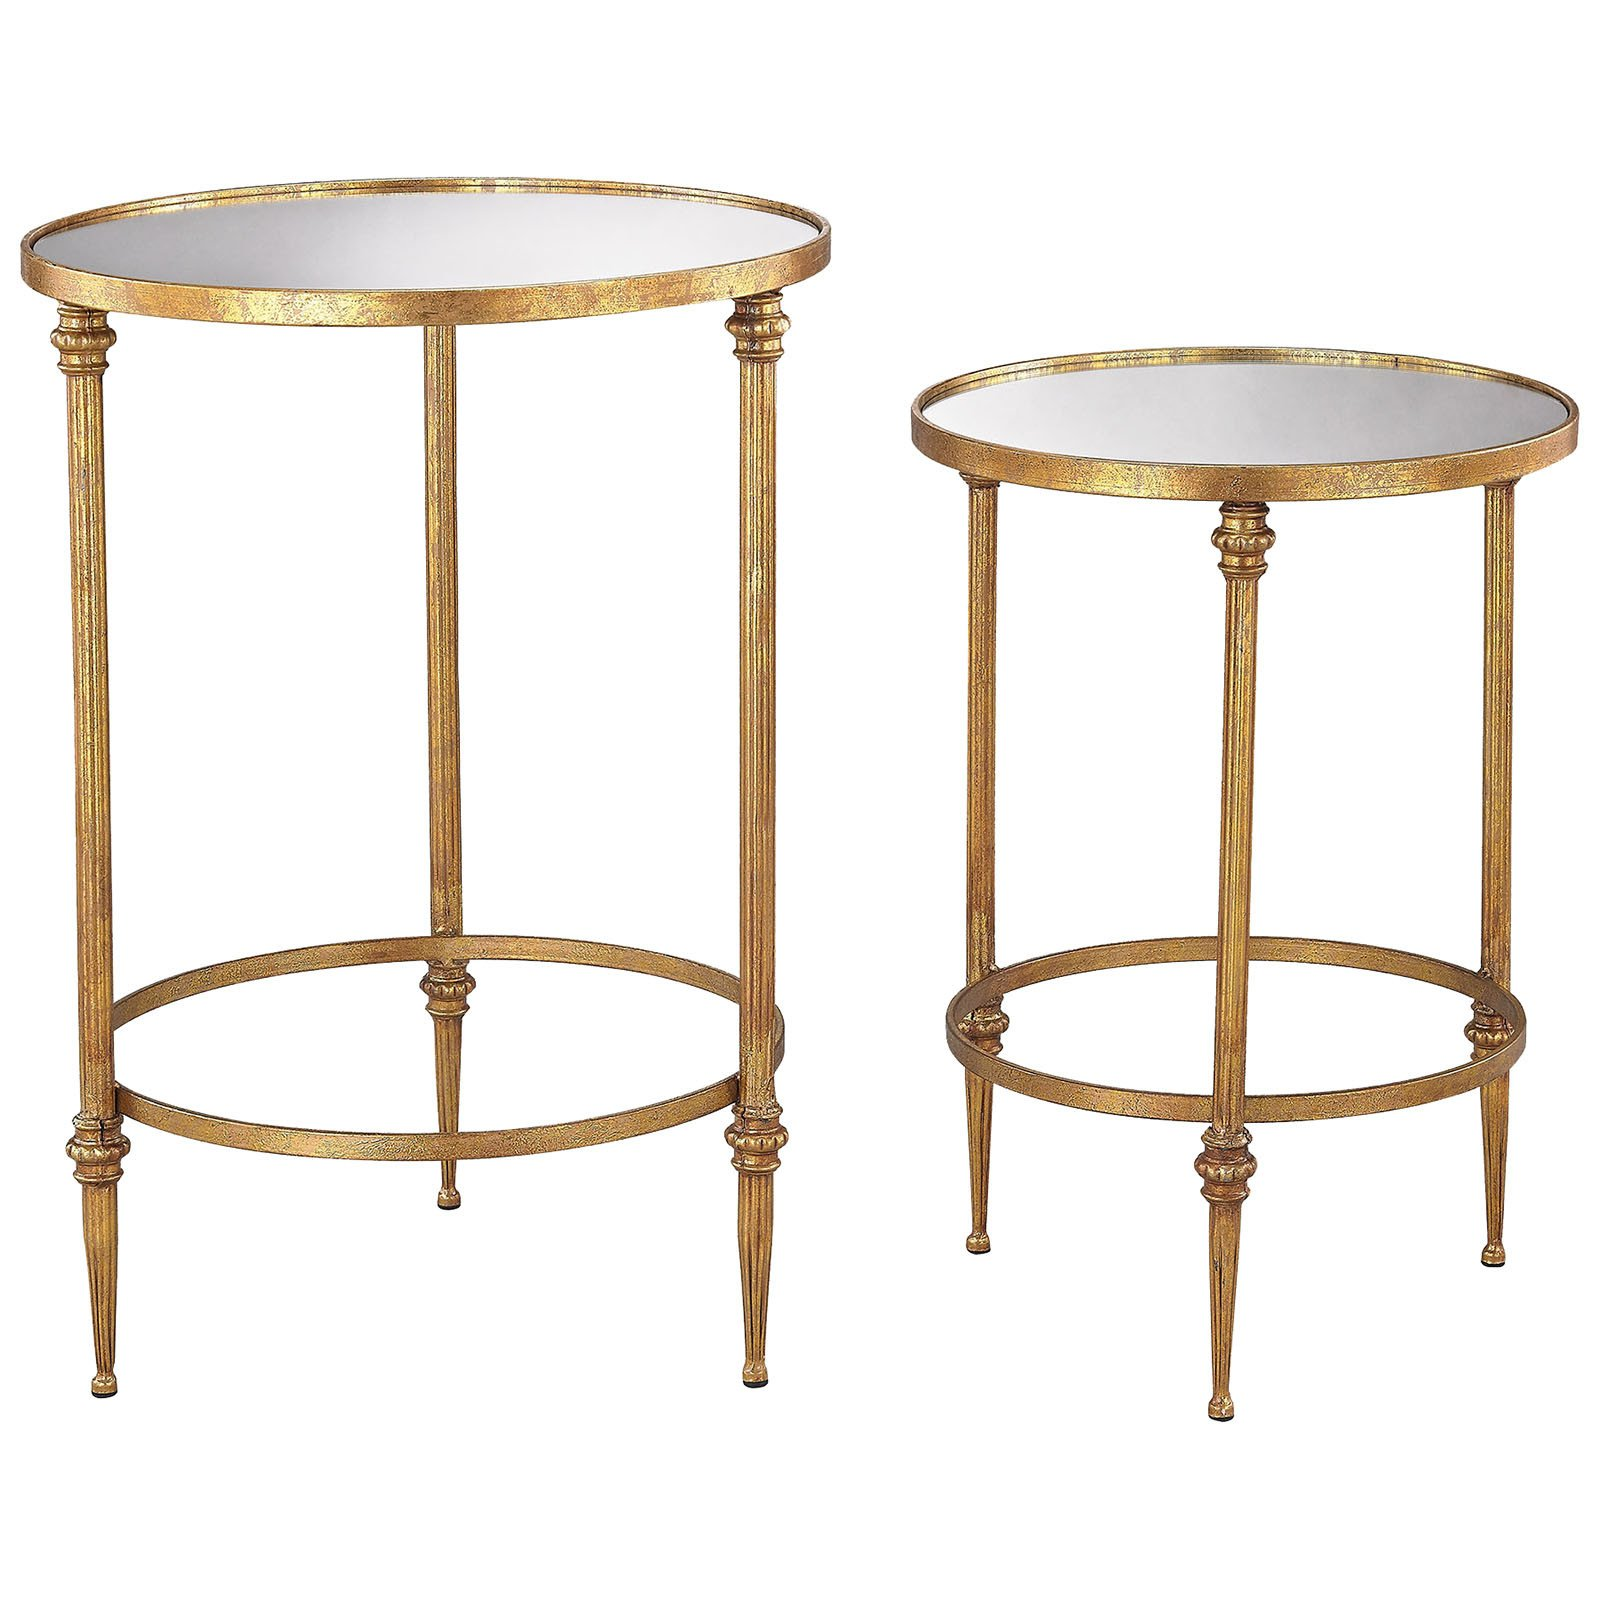 gold accent tables contemporary alcazar table and mirror set antique ships lantern lamp mid century modern dining chairs blue white ginger jar carpet door strip wood round